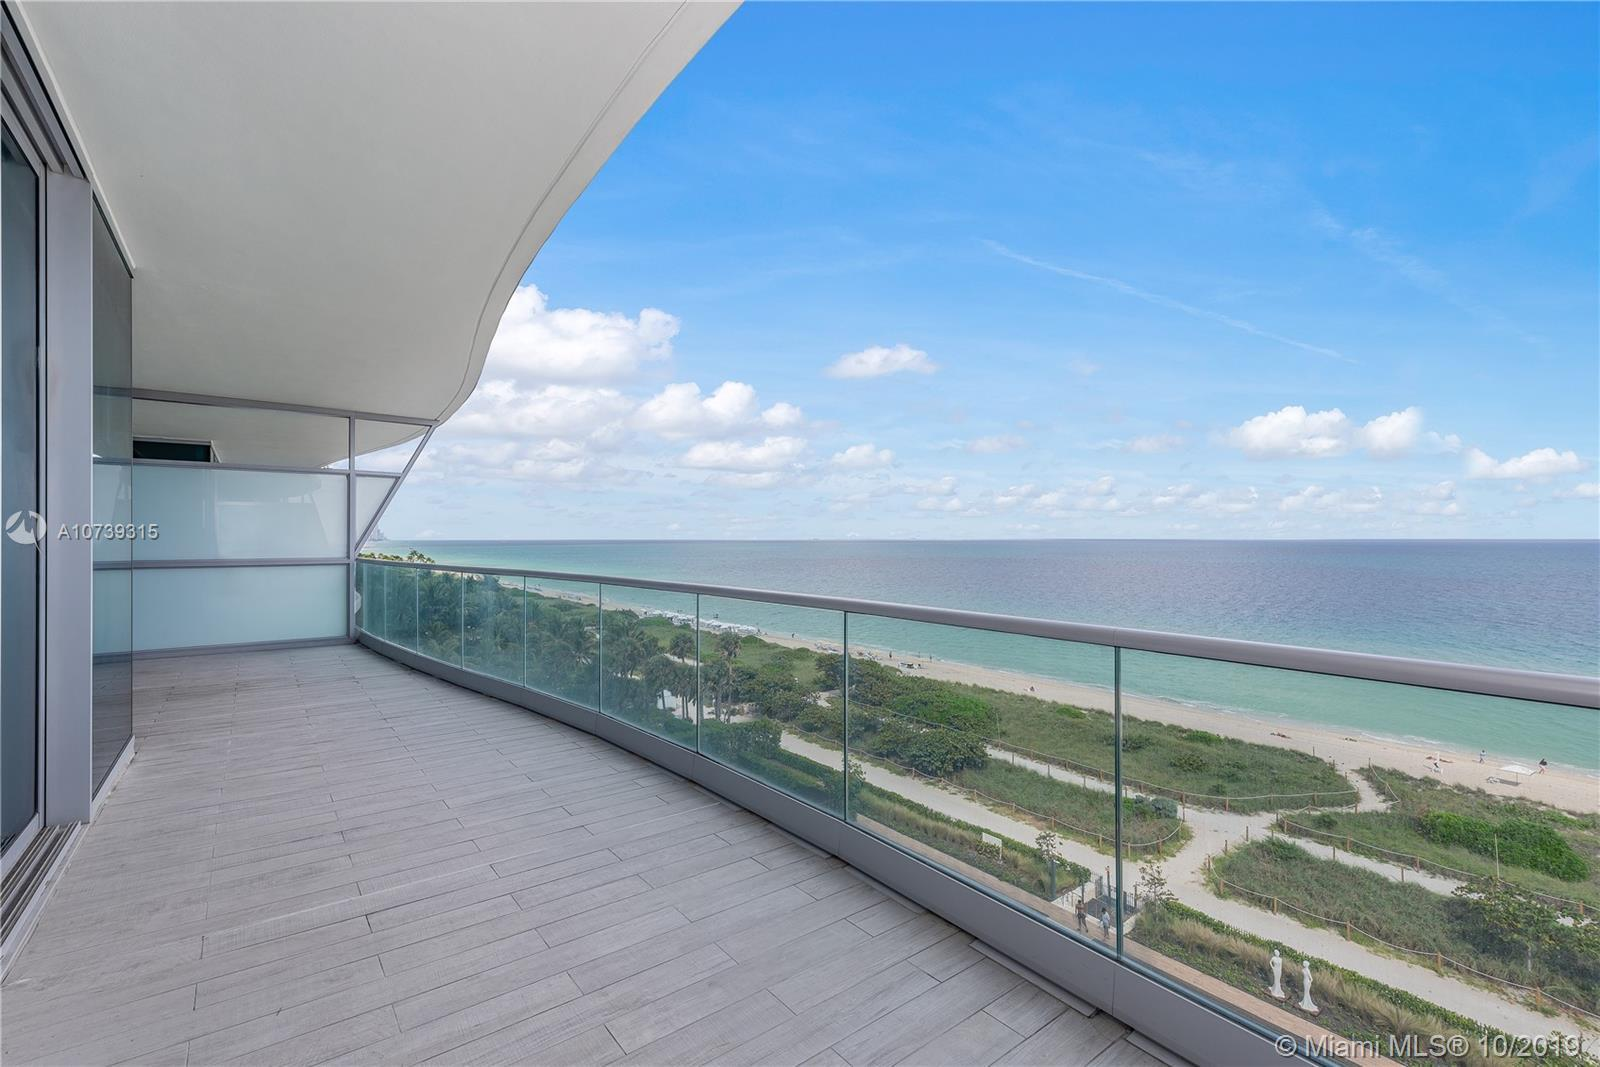 Located on the East side of Chateau, this jaw dropping unit is a once in a life time opportunity. Be